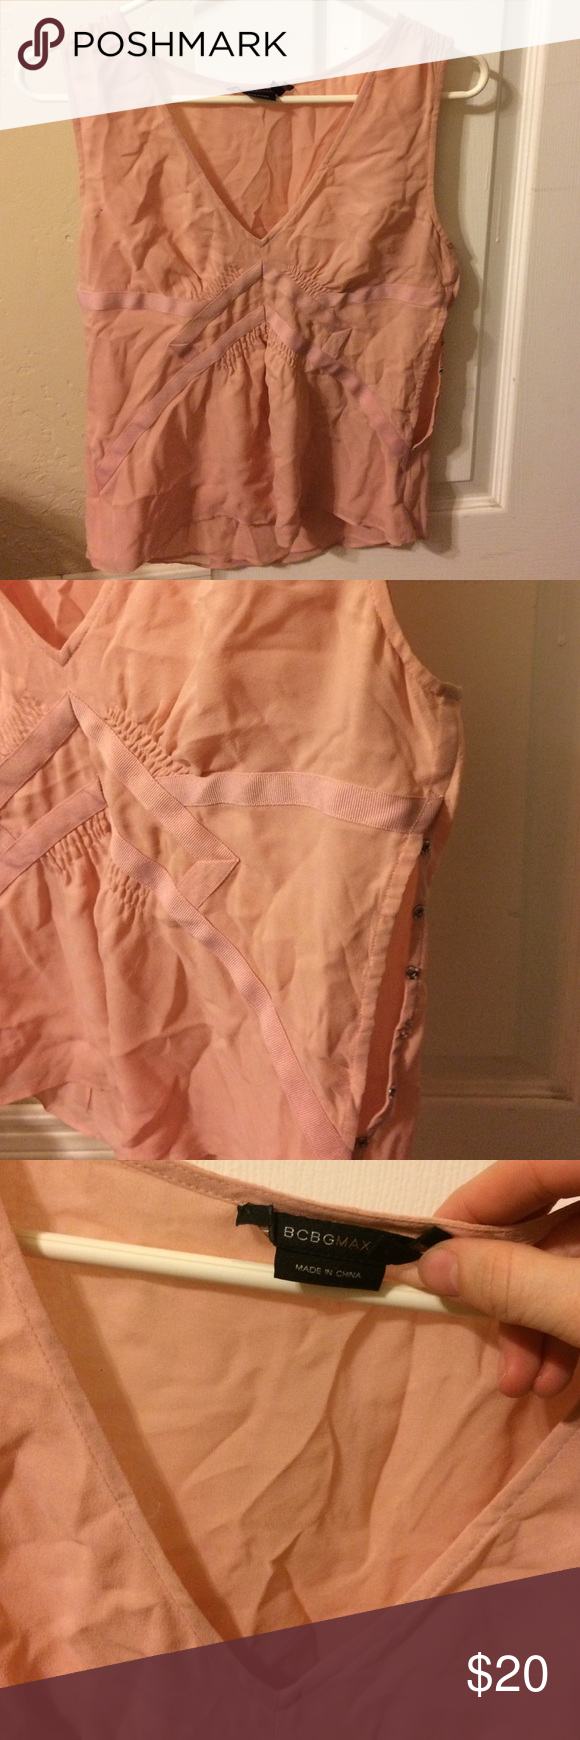 BCBG blouse 100% silk blouse, buttons up the side. V neck. Pale pink. Needs a good pressing :) just wrinkled from storage BCBGMaxAzria Tops